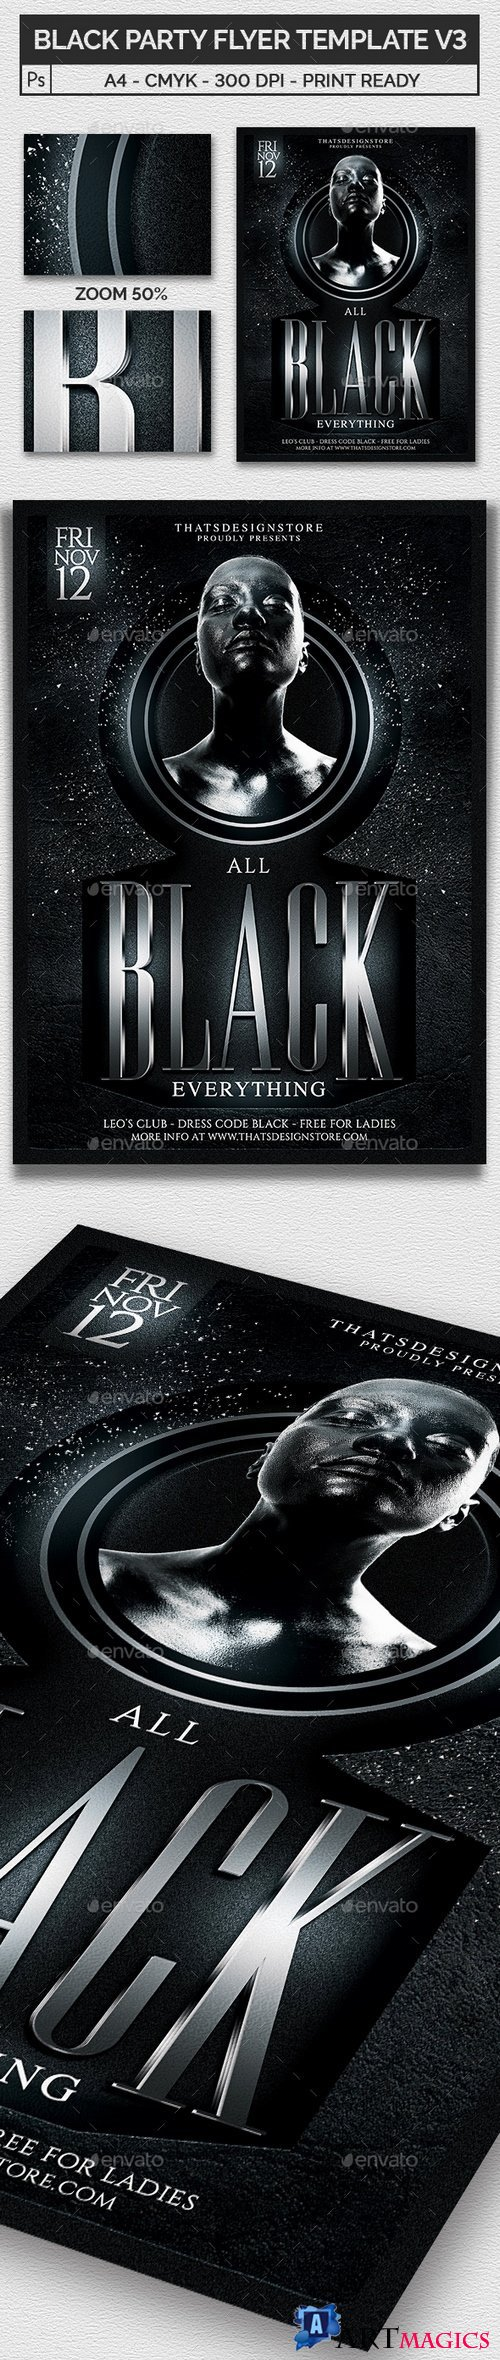 Black Party Flyer Template V3 19951559